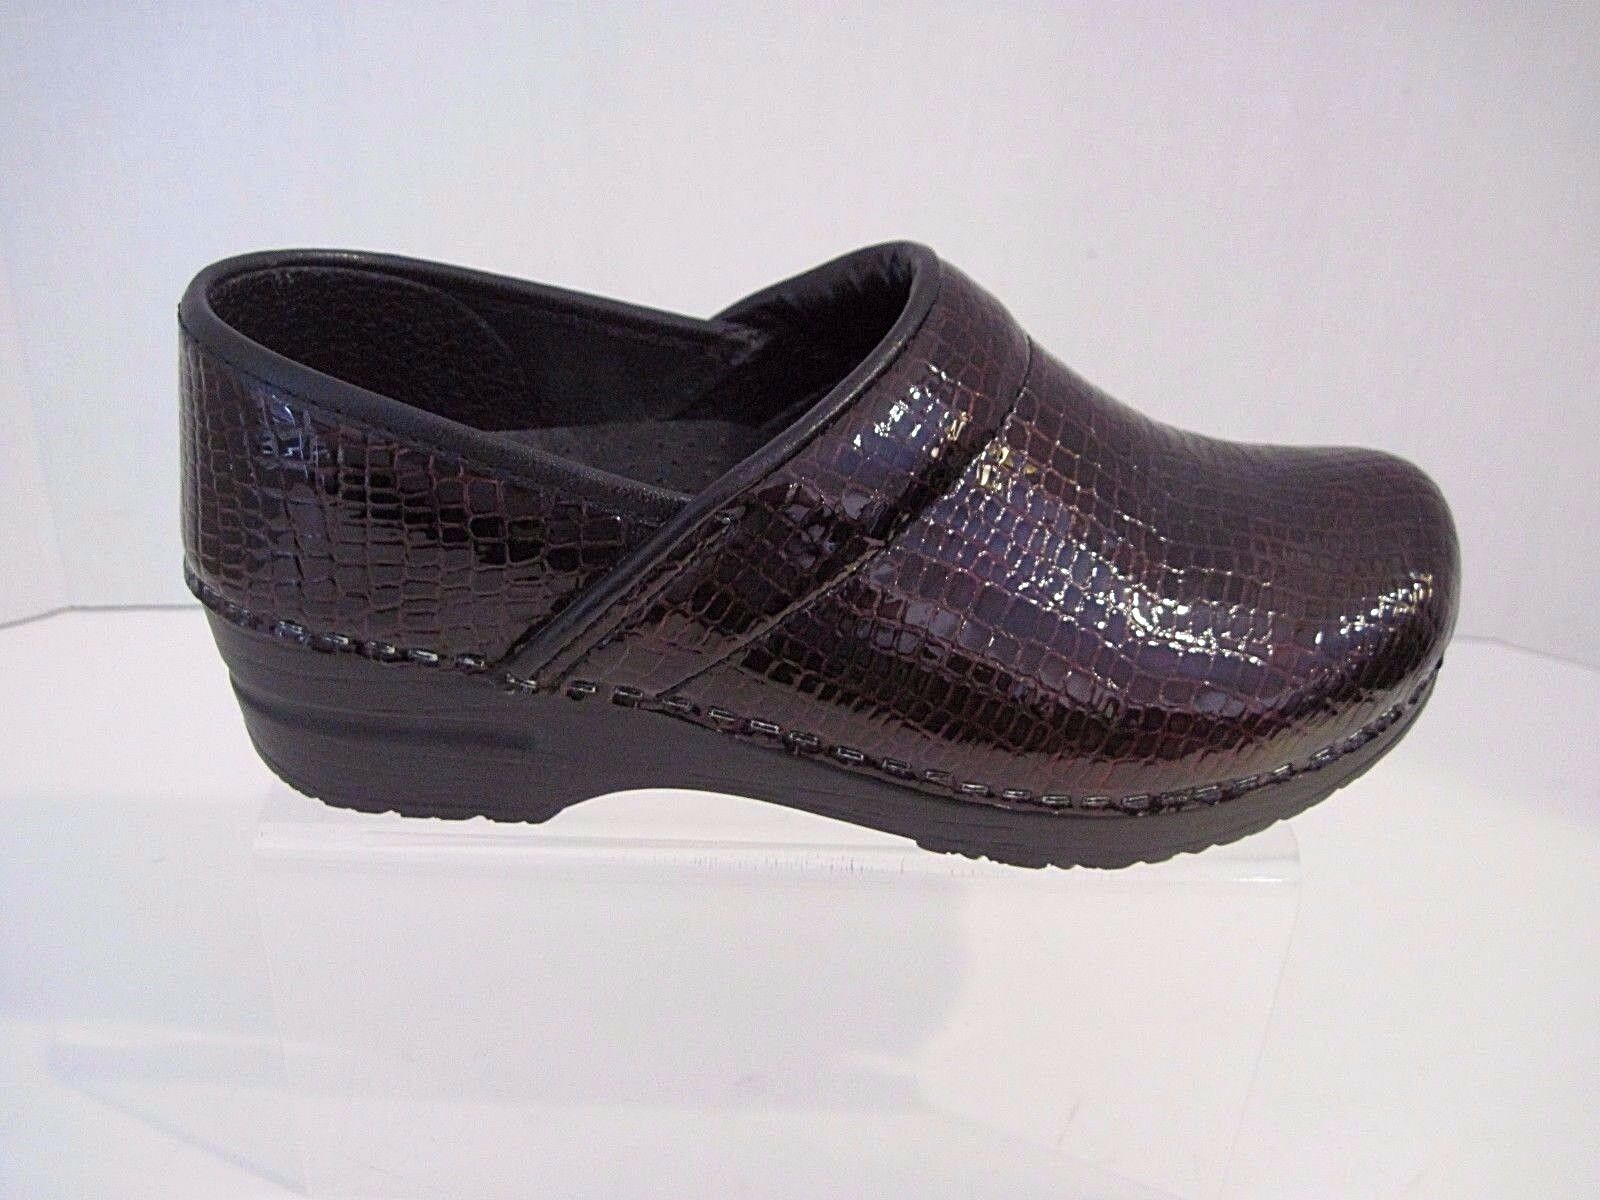 Sanita Danish Clogs Professional Croco Embossed Patent Leather Bordeaux Size Size Size 37 e7b5cb